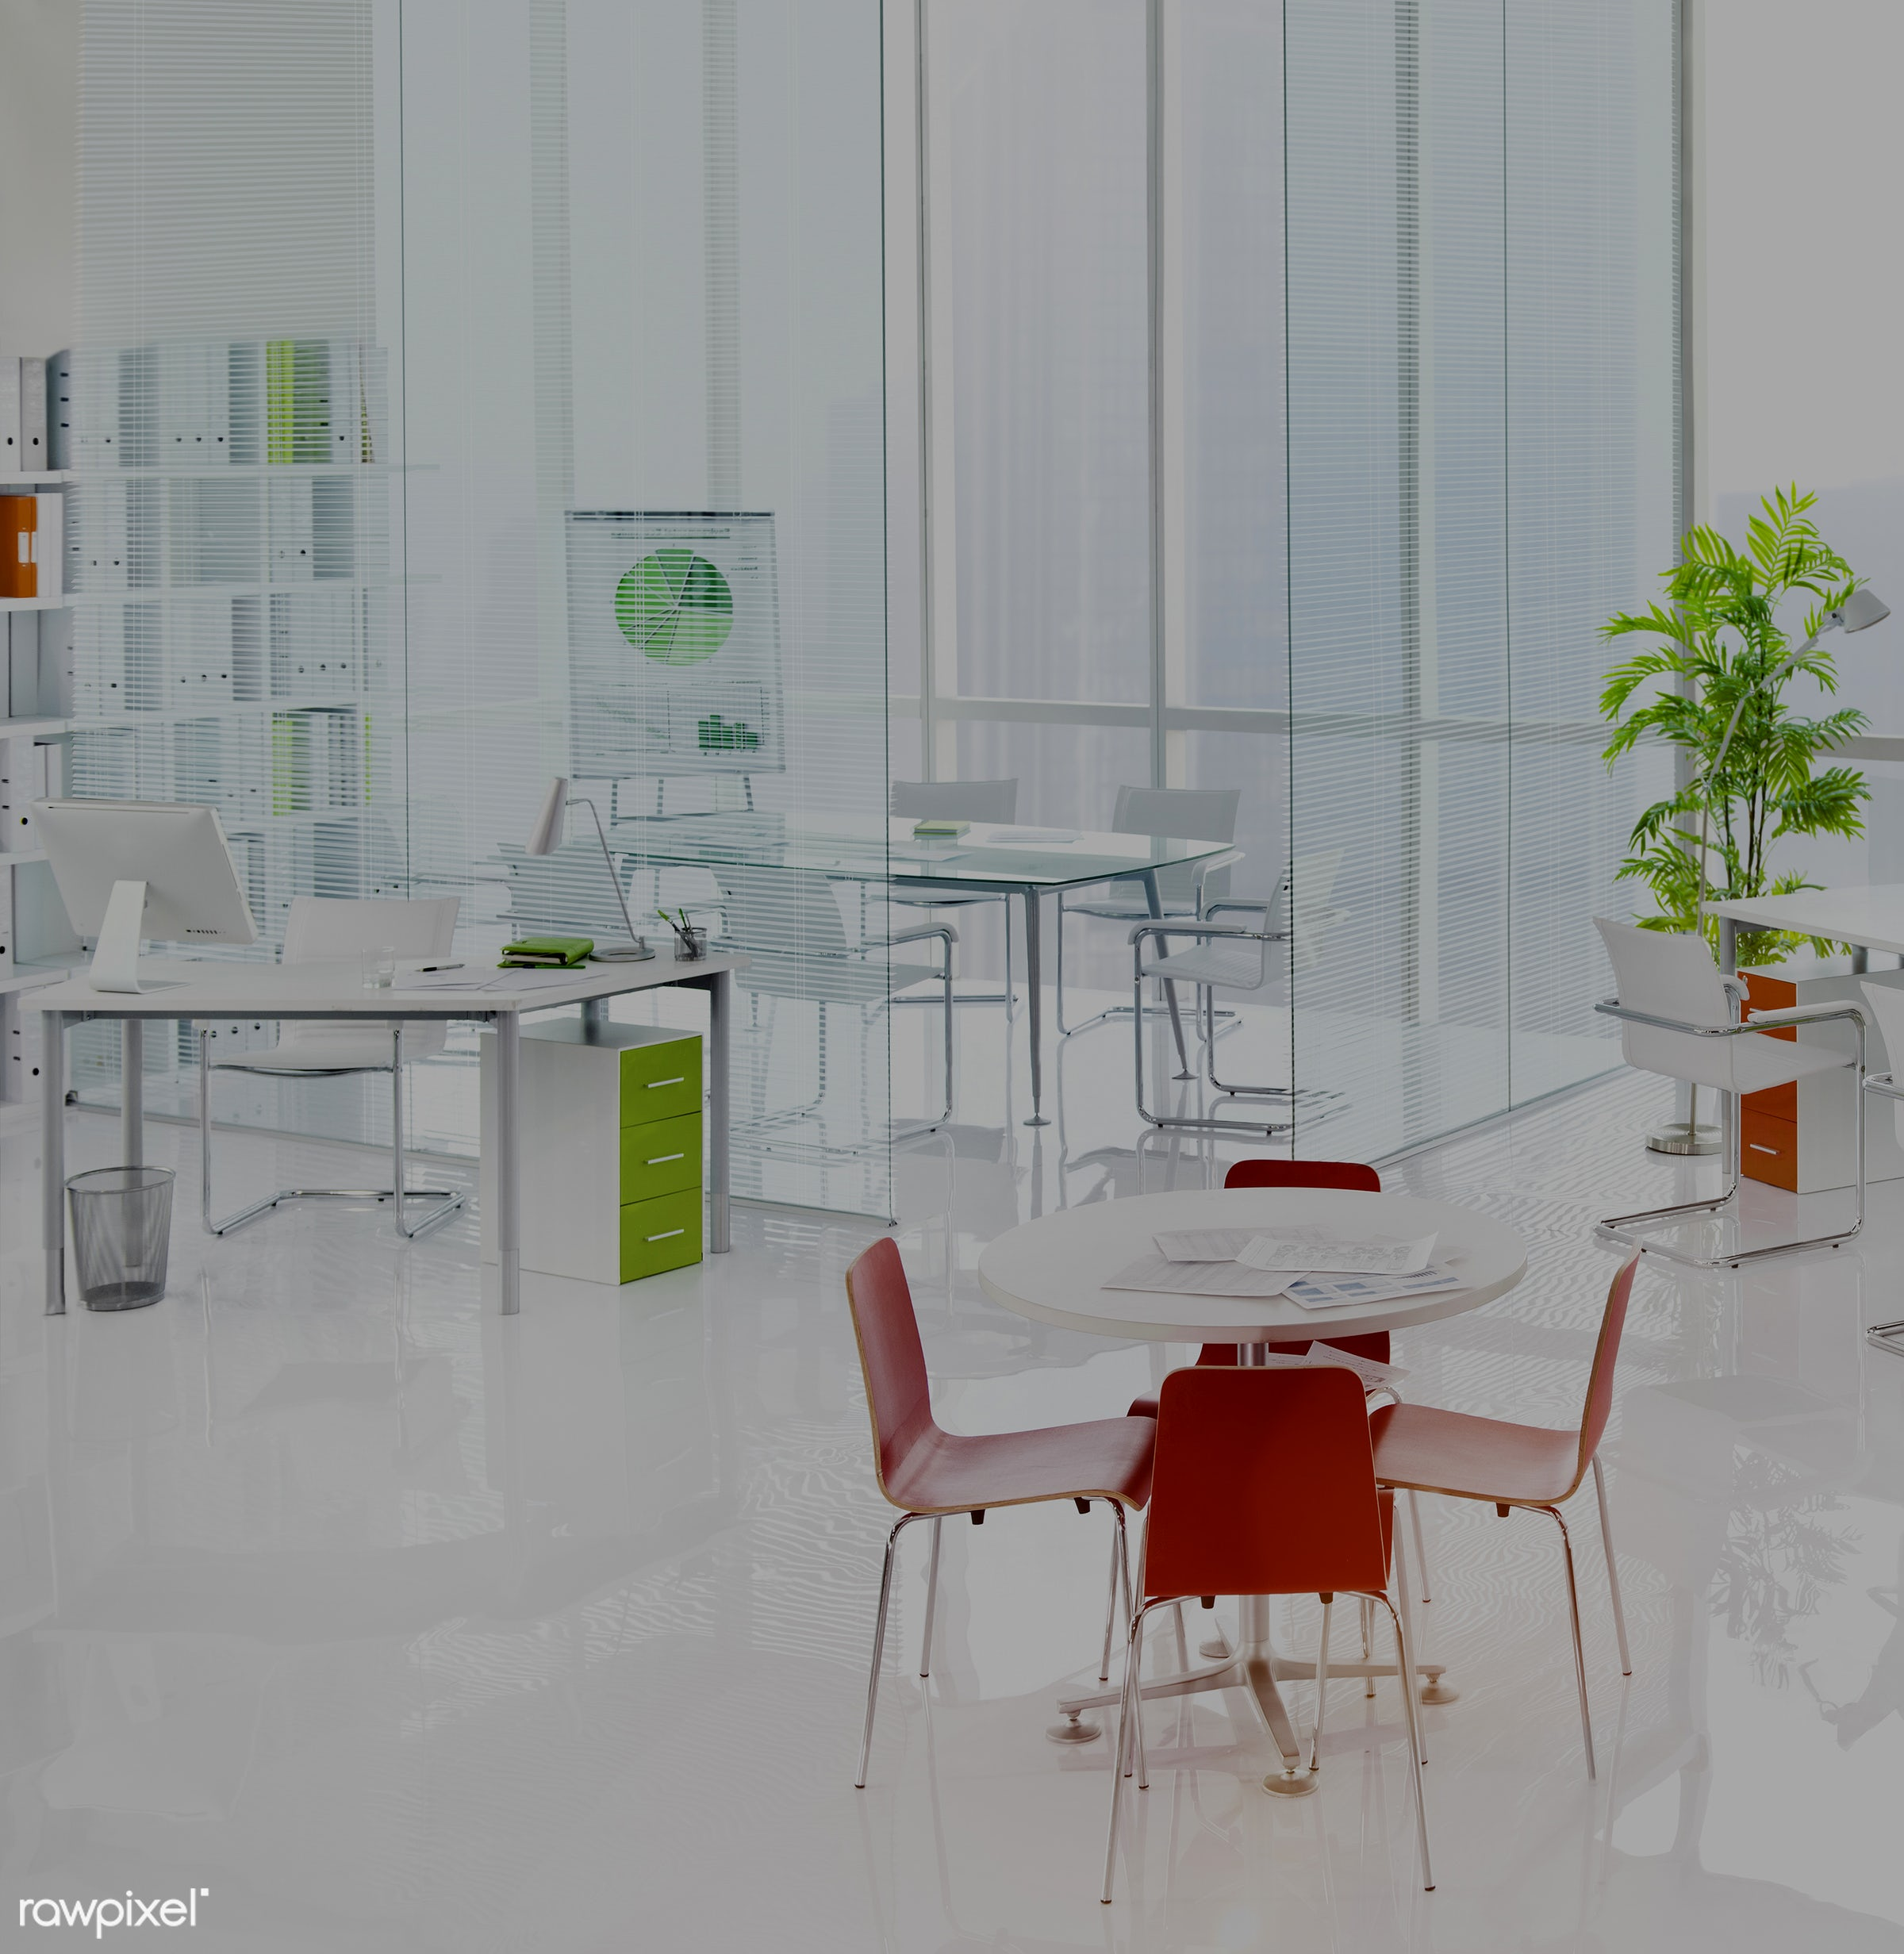 An empty office - architecture, brainstorming, build structure, business, center, city, city view, cityscape, computer,...